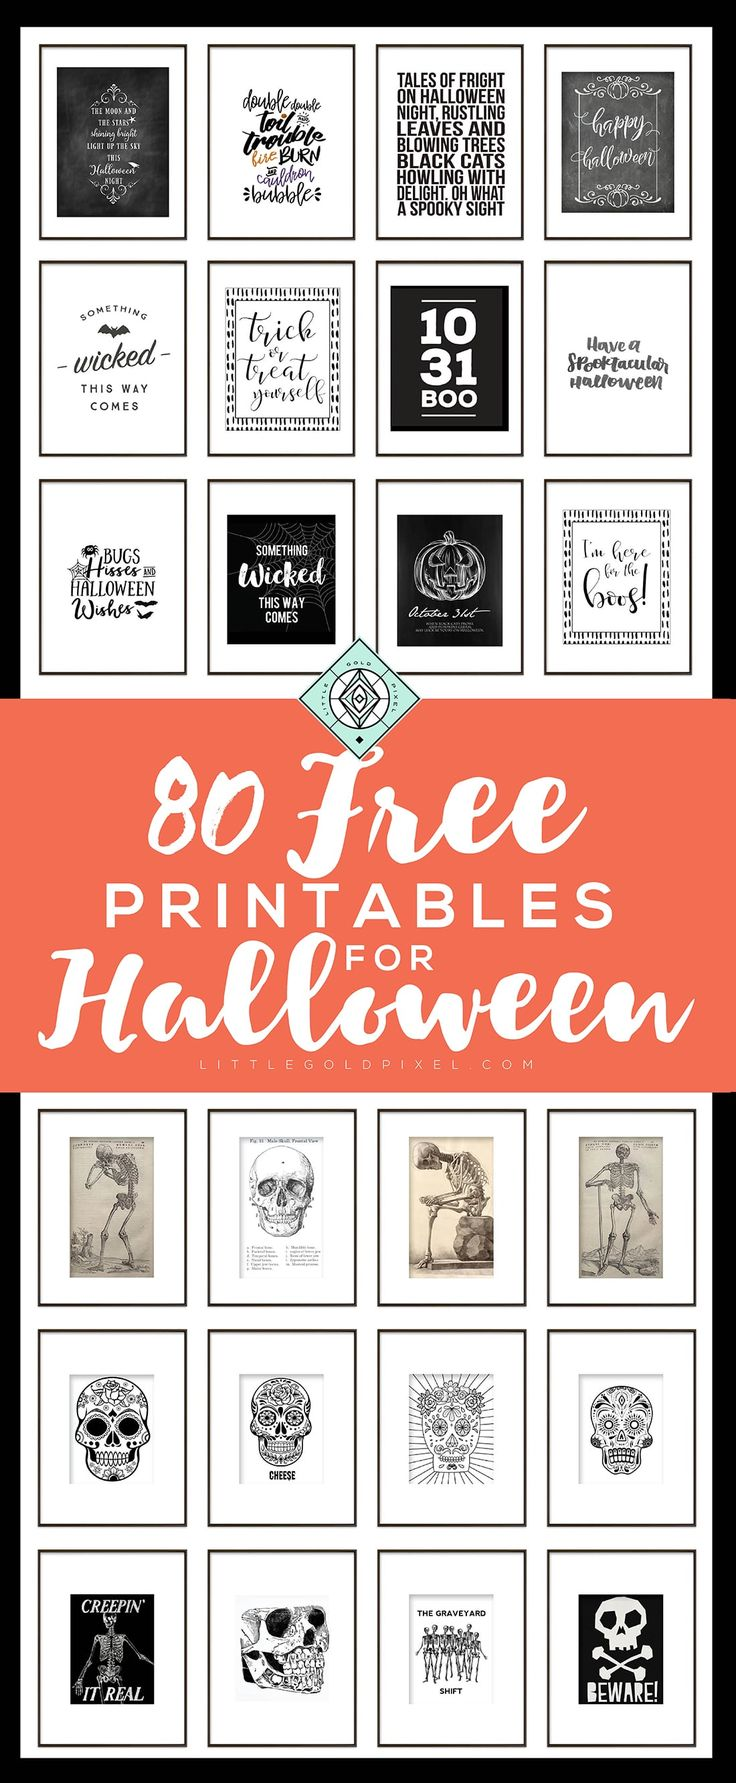 Last-Minute Decor: Halloween Free Printables Vol. 3 •Little Gold Pixel • Bookmark and save for your Halloween decor!